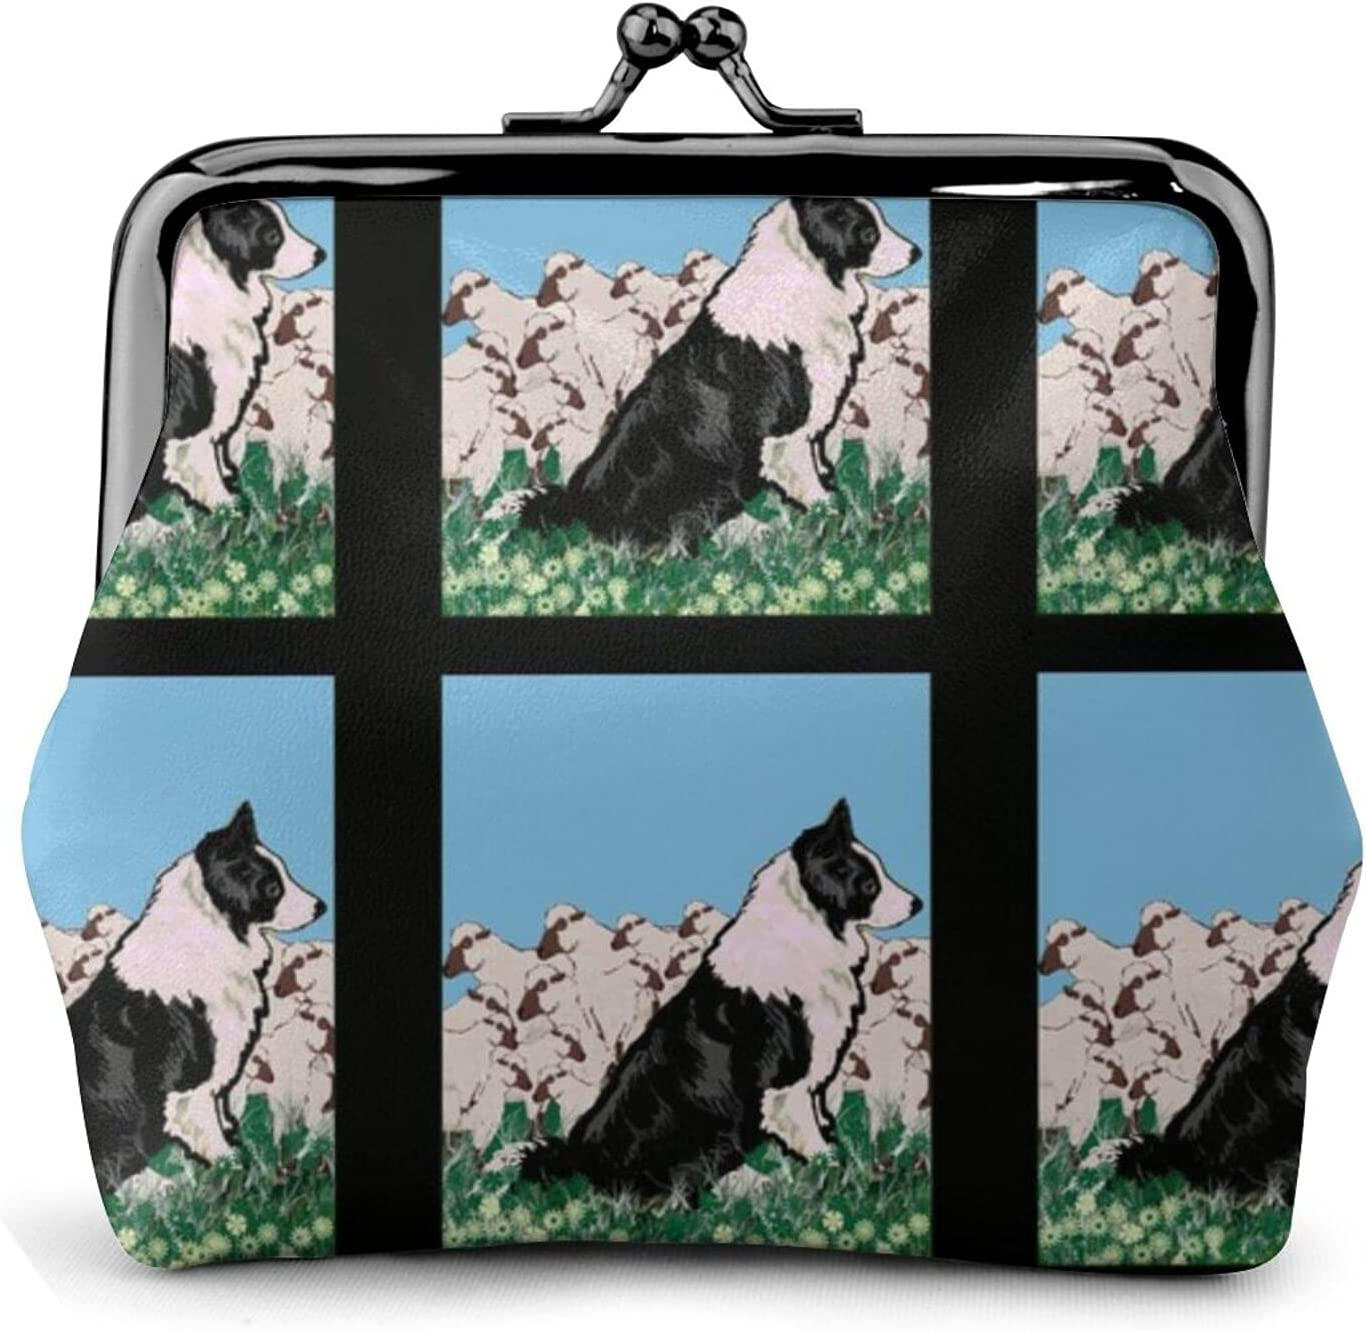 Border Collie And 688 Coin Purse Retro Money Pouch with Kiss-lock Buckle Small Wallet for Women and Girls